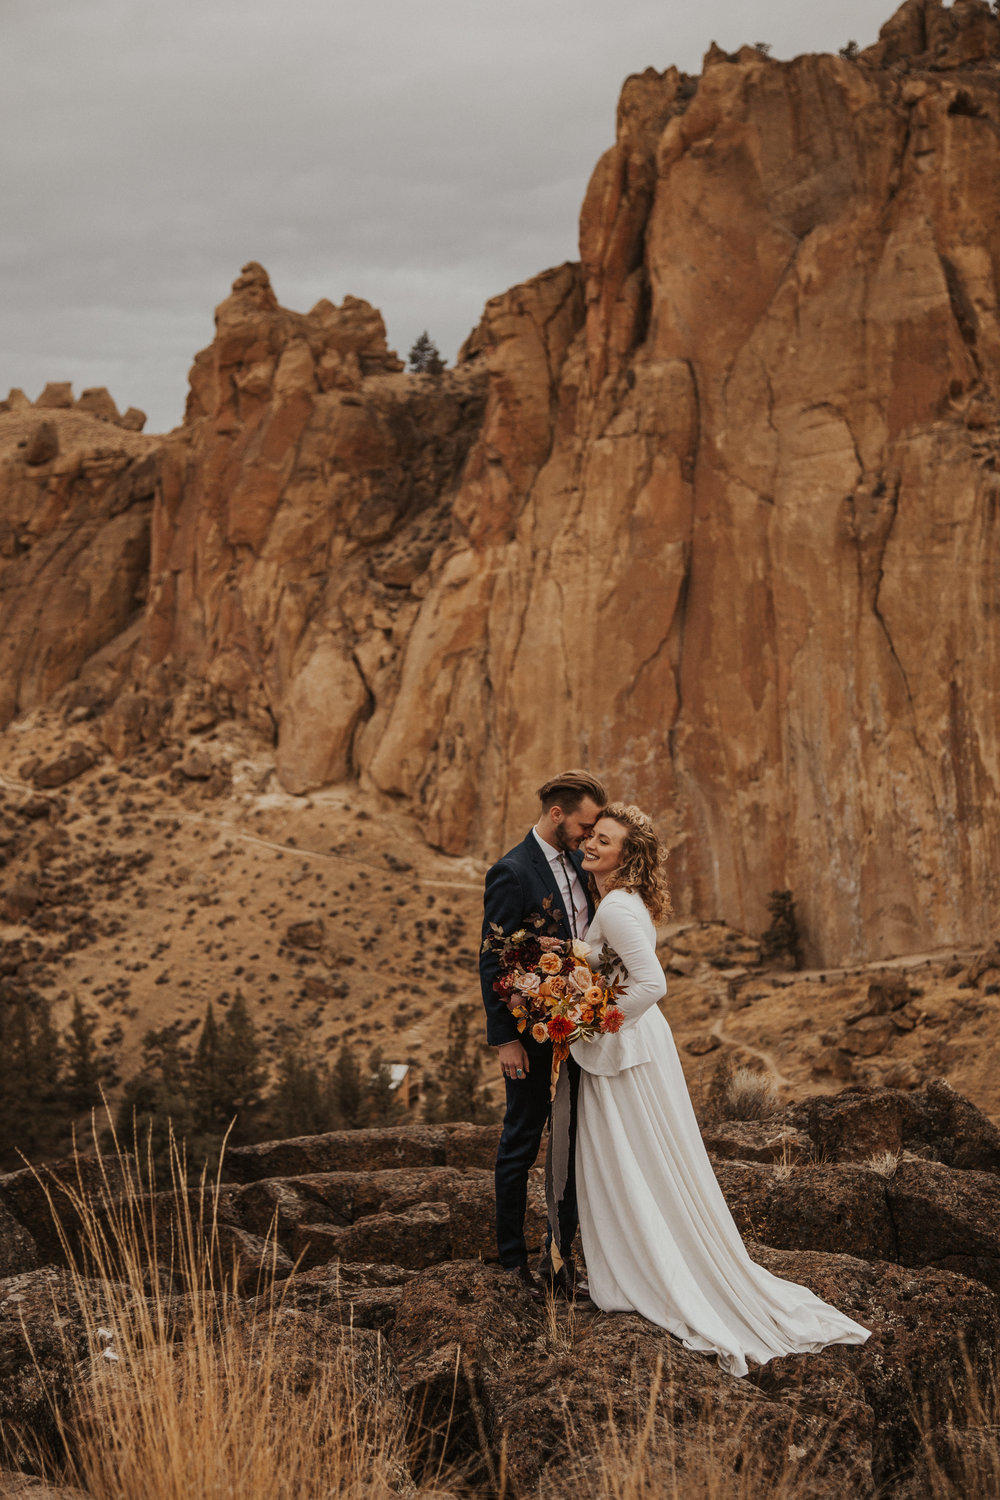 August-muse-images-smith-rock-elopement-oregon-bri-dylan-13.jpg